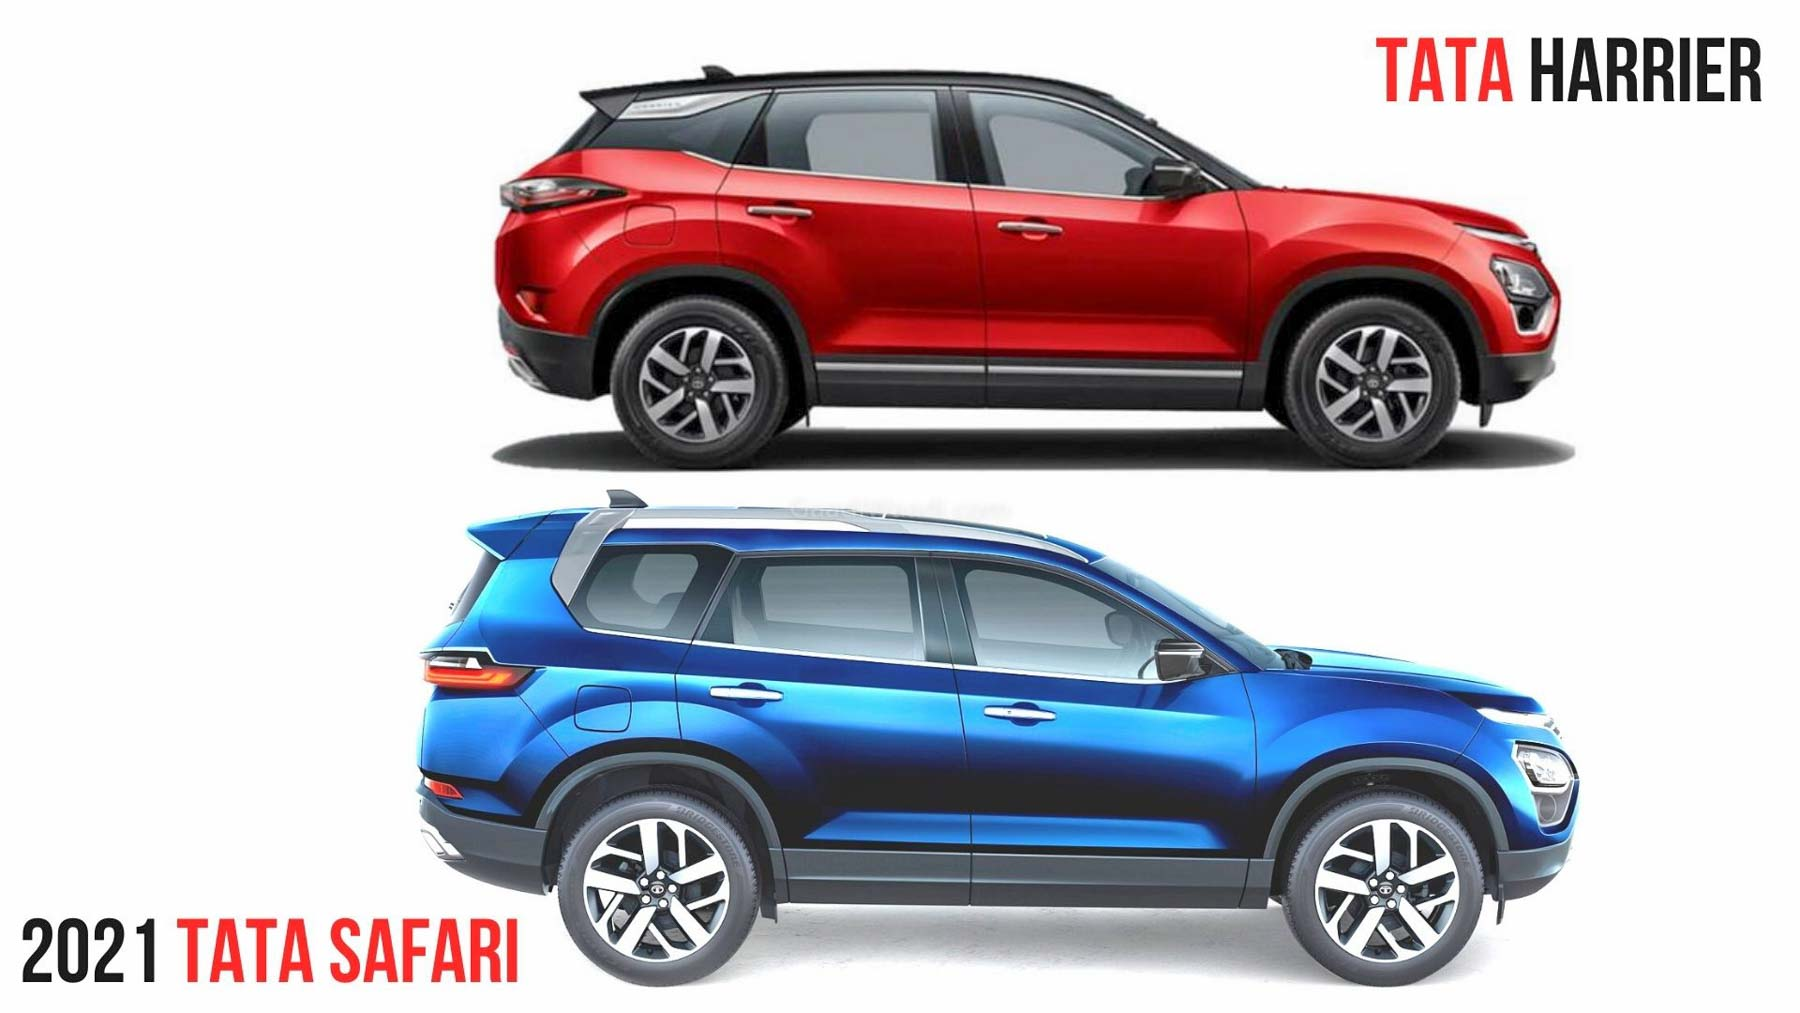 Tata Model Wise Feb 2021 Sales - Tiago, Nexon, Harrier, Safari, Altroz - GaadiWaadi.com